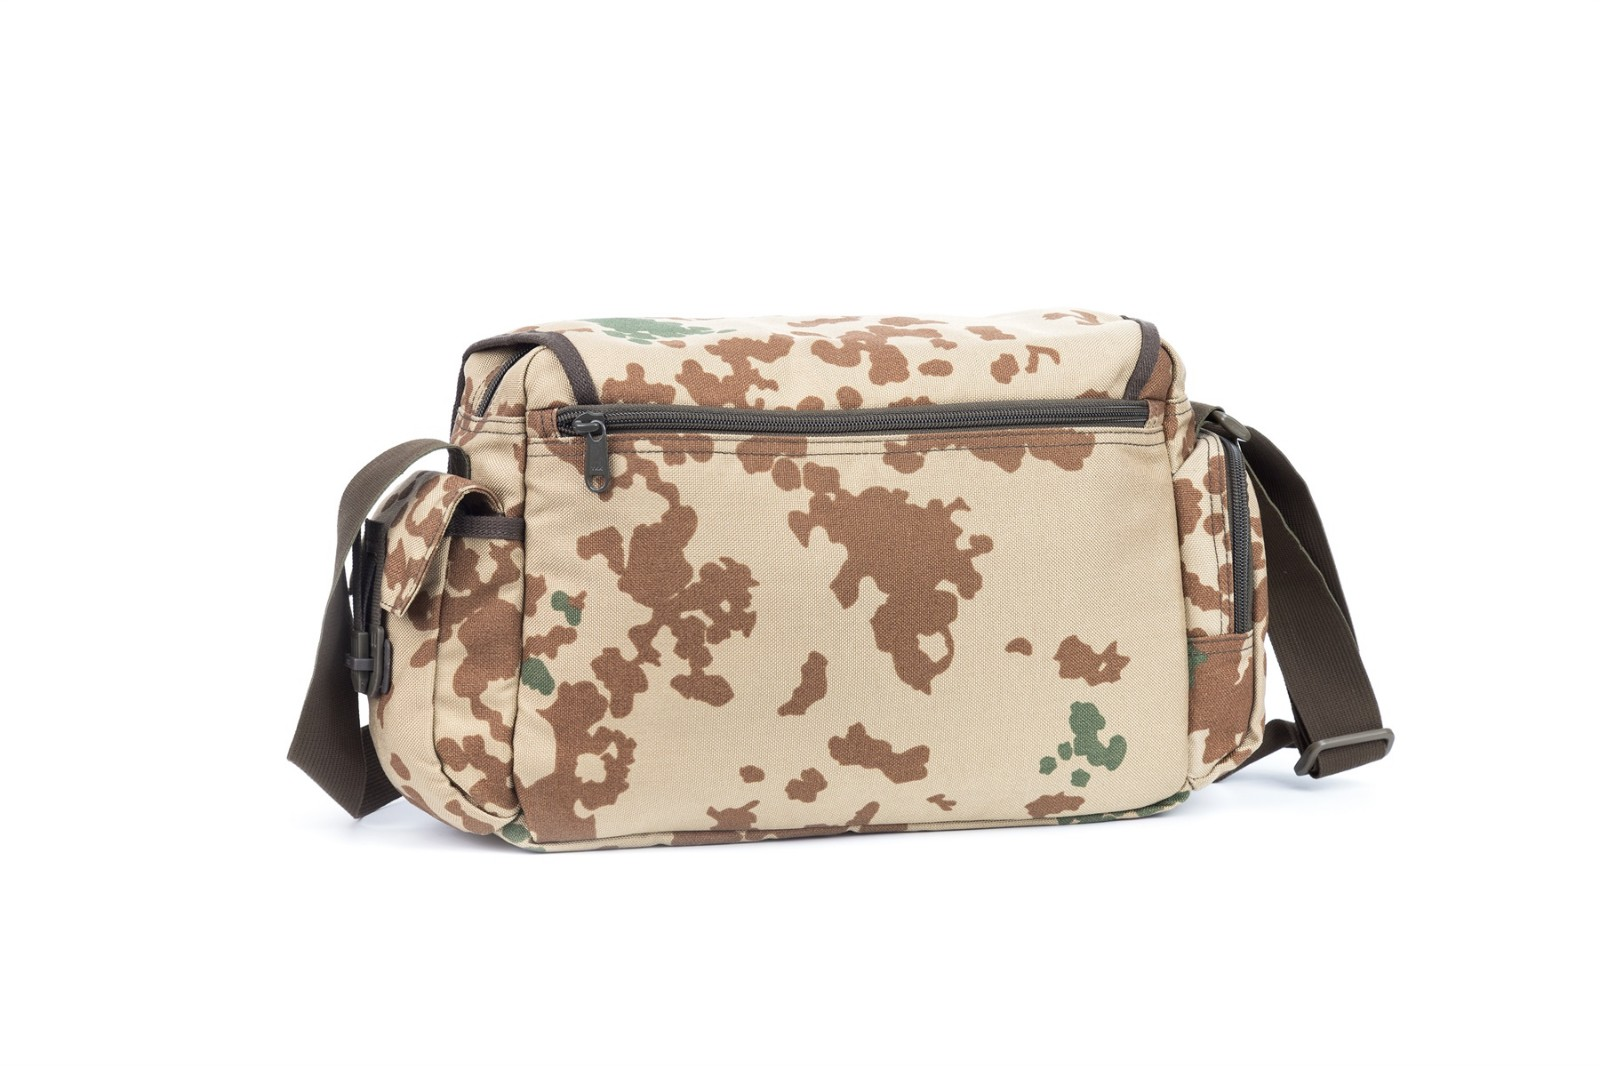 GF bags-Find Military Gear Bags Military Messenger Bag From GF Bags-5